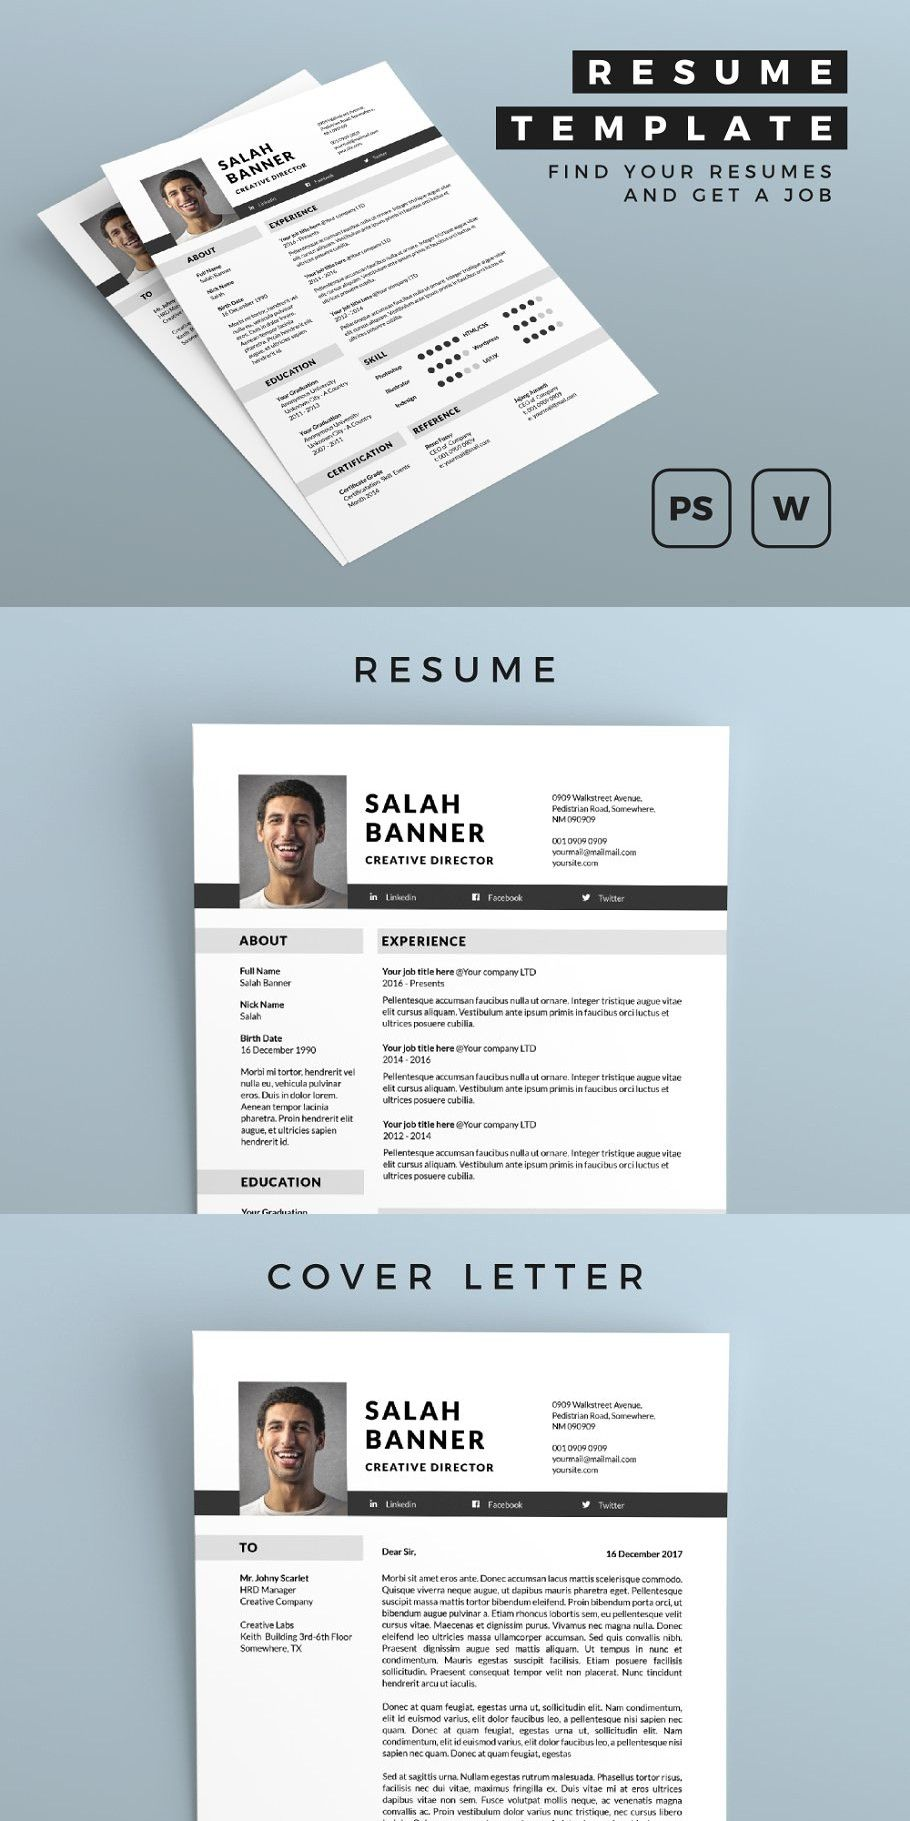 Resume in 2020 Simple resume template, How to make